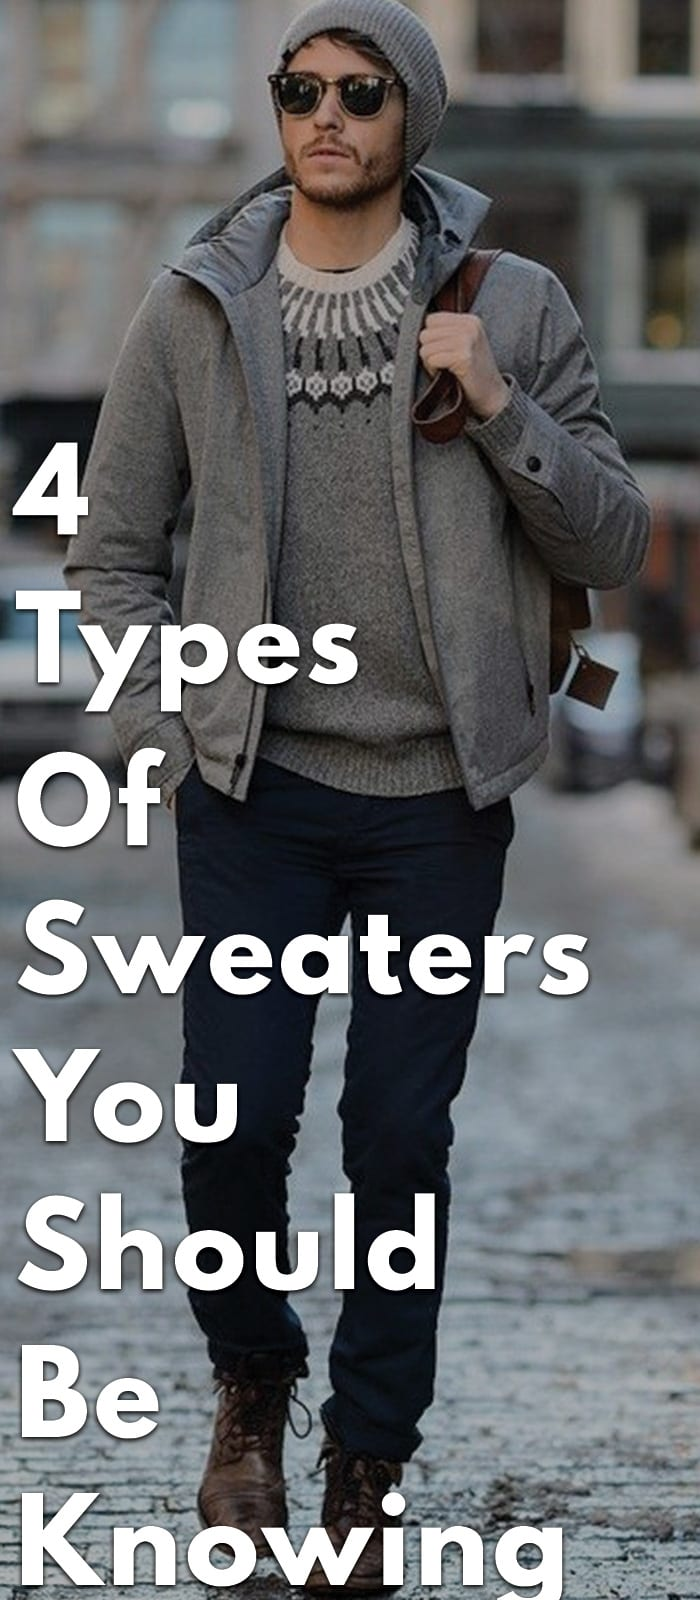 4-Types-Of-Sweaters-You-Should-Be-Knowing